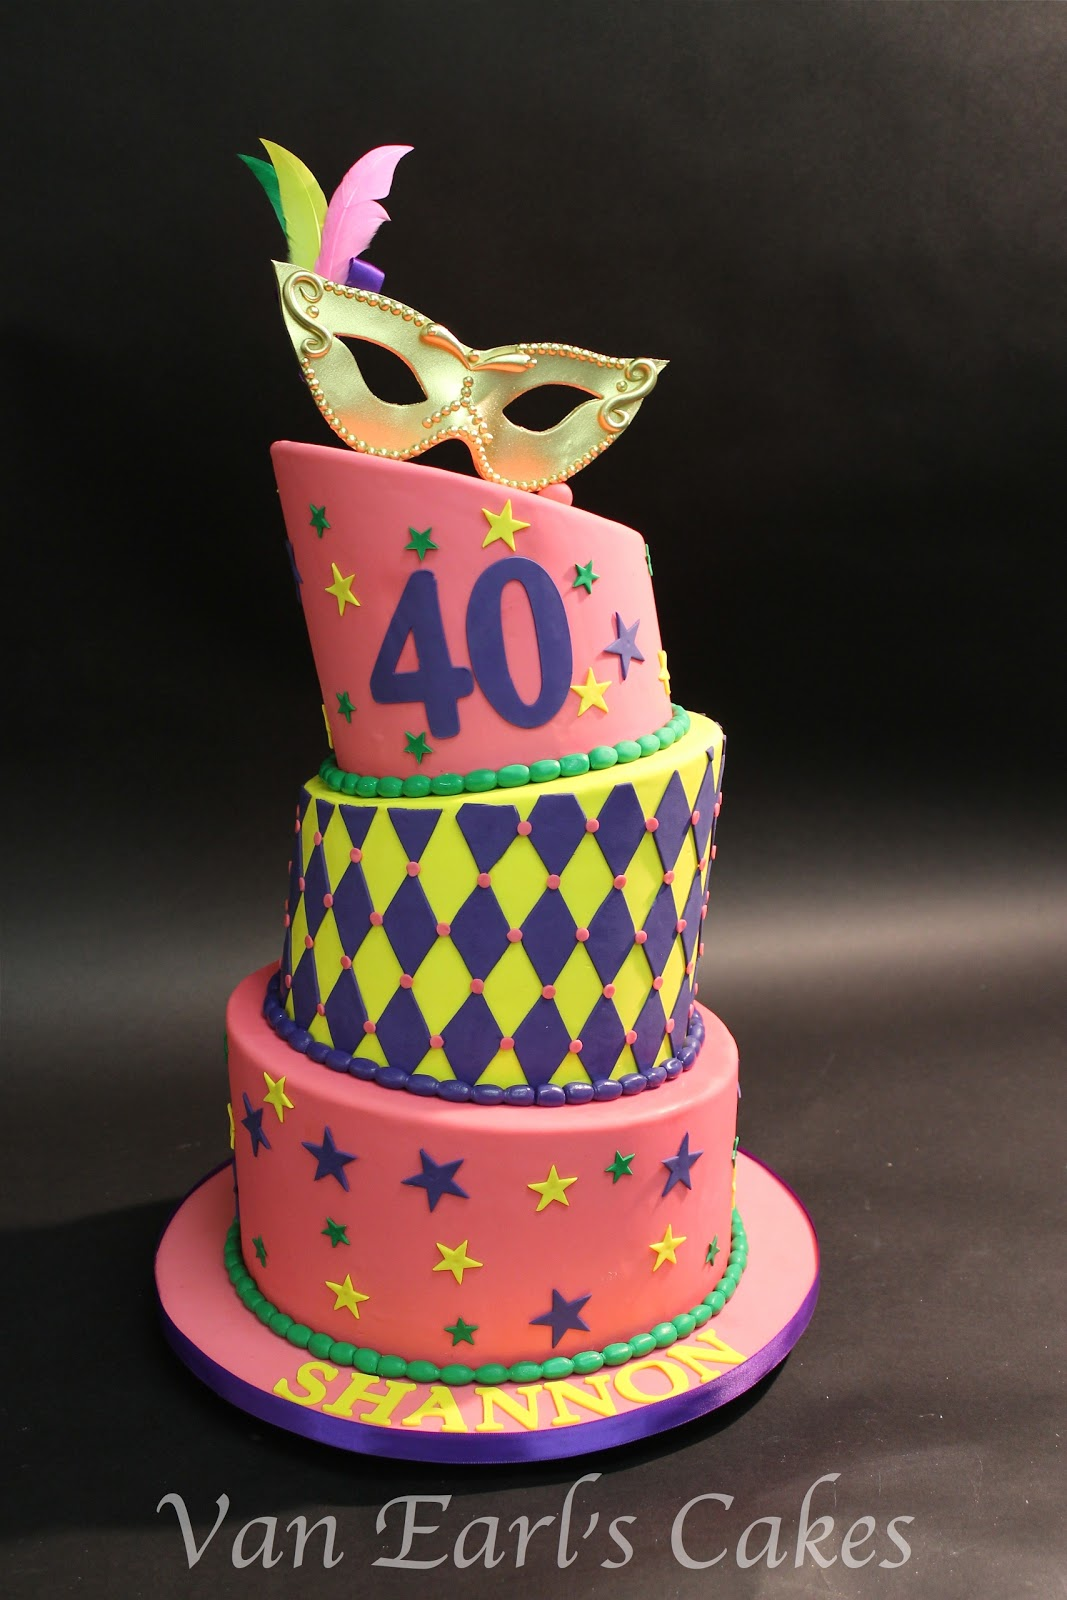 Van Earls Cakes 40th Mardi Gras Theme Birthday Cake